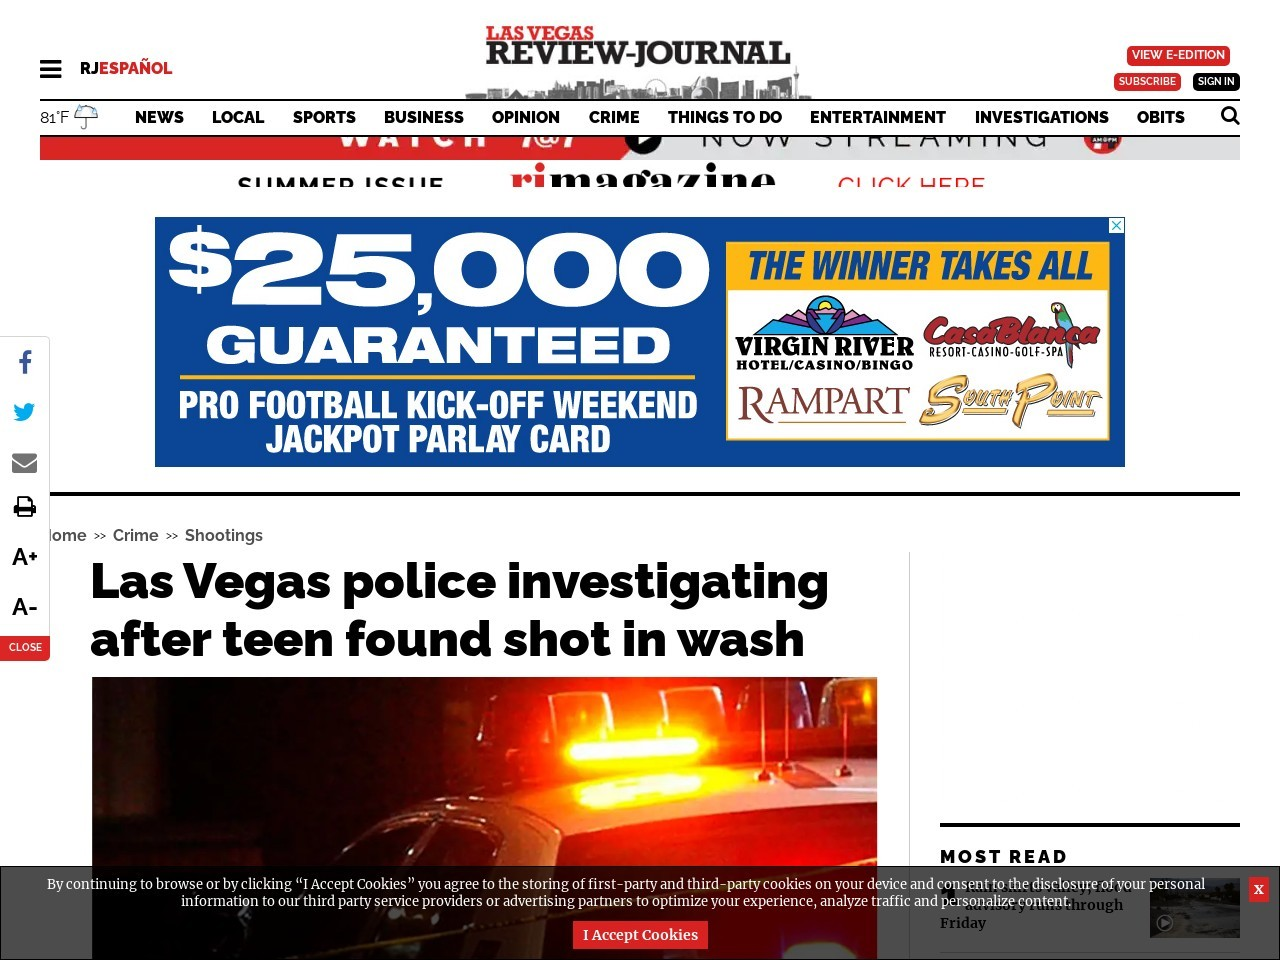 Las Vegas police investigating after teen found shot in wash